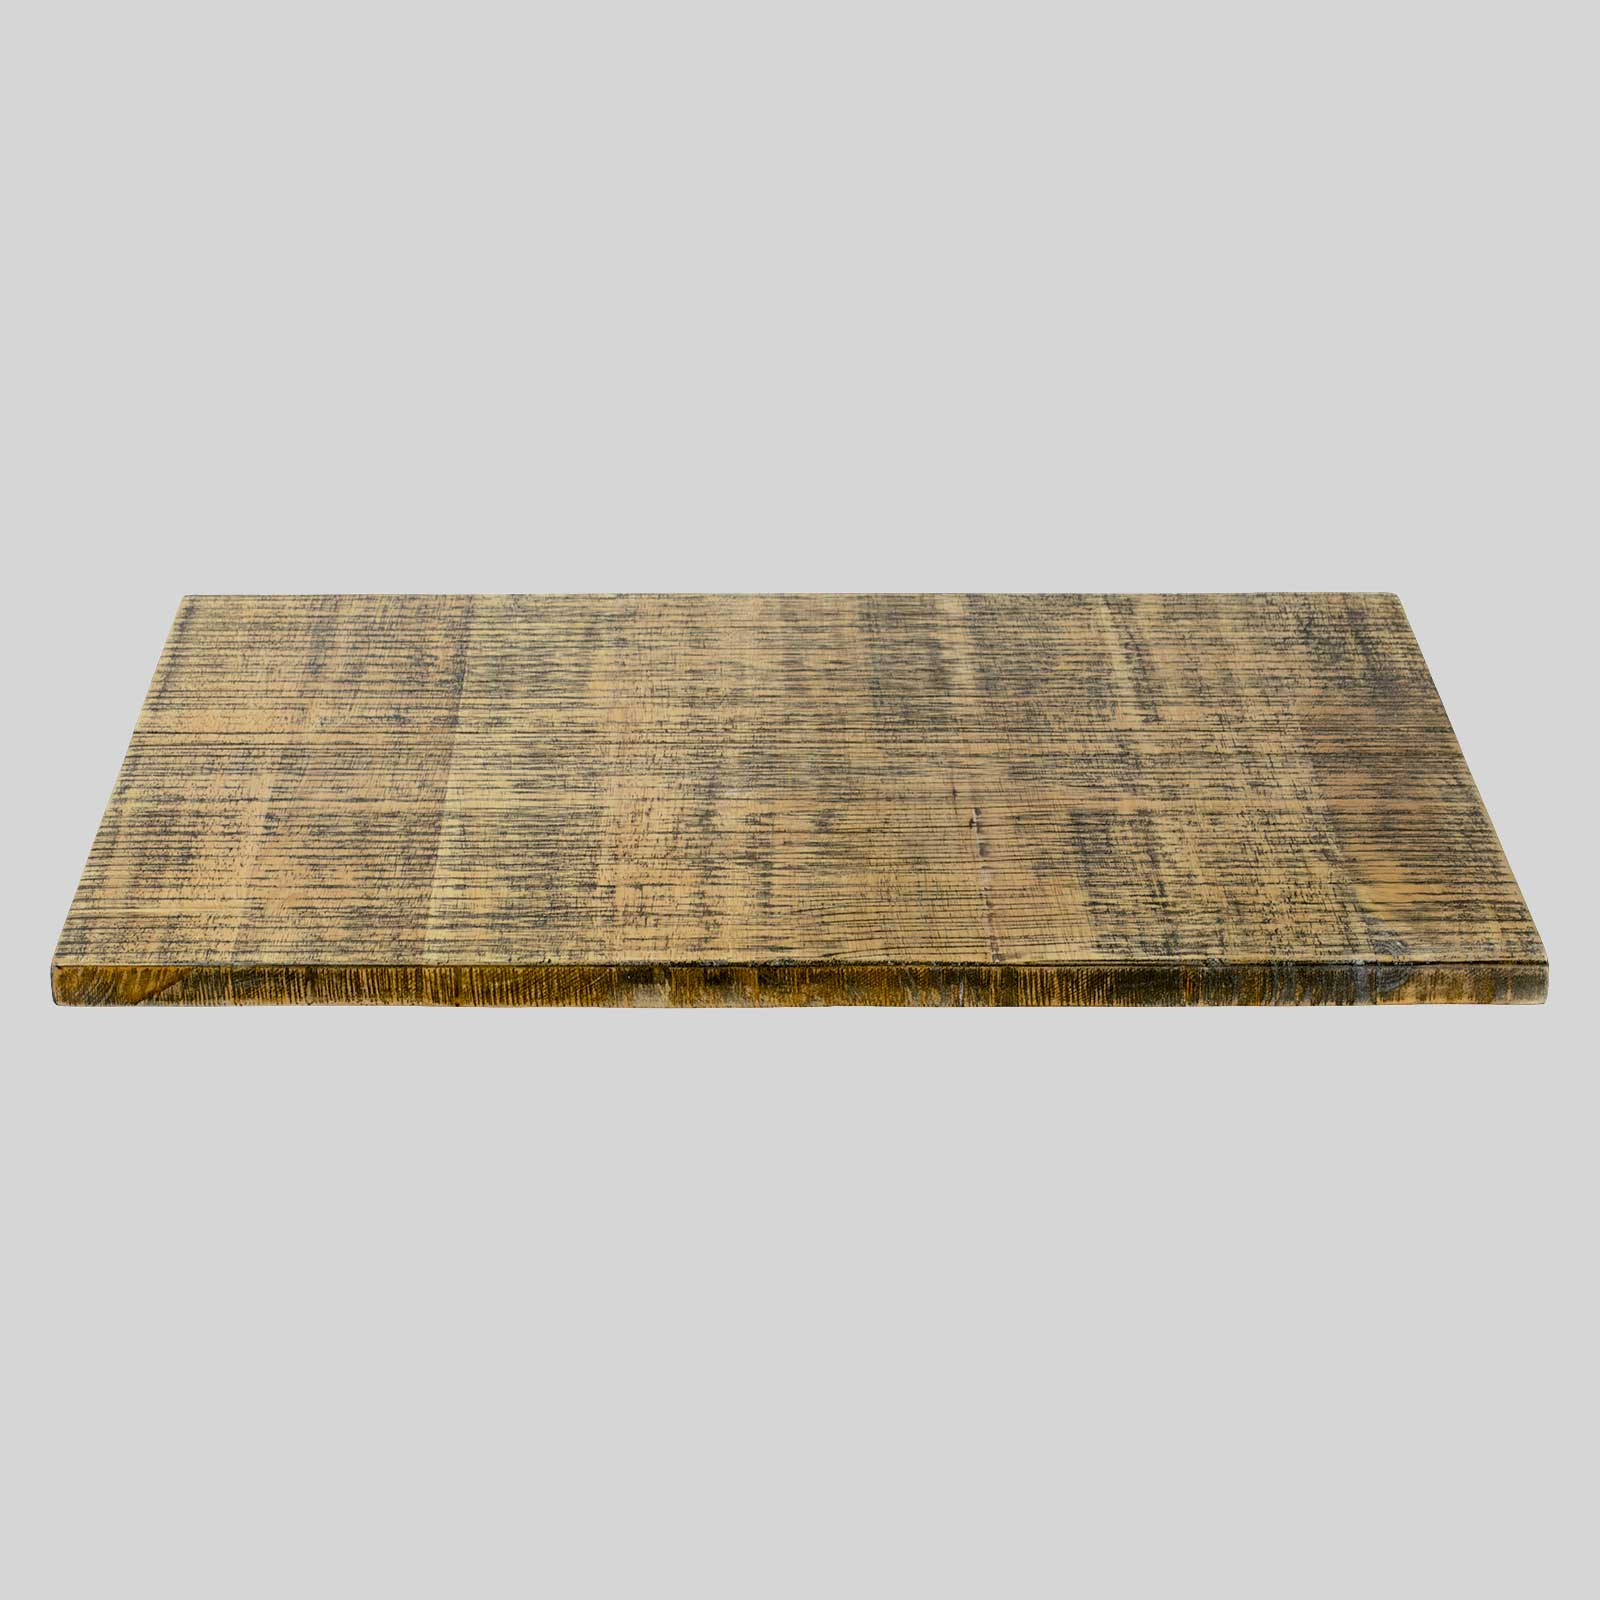 Table Tops For Hotels Restaurants Bars Amp Cafes